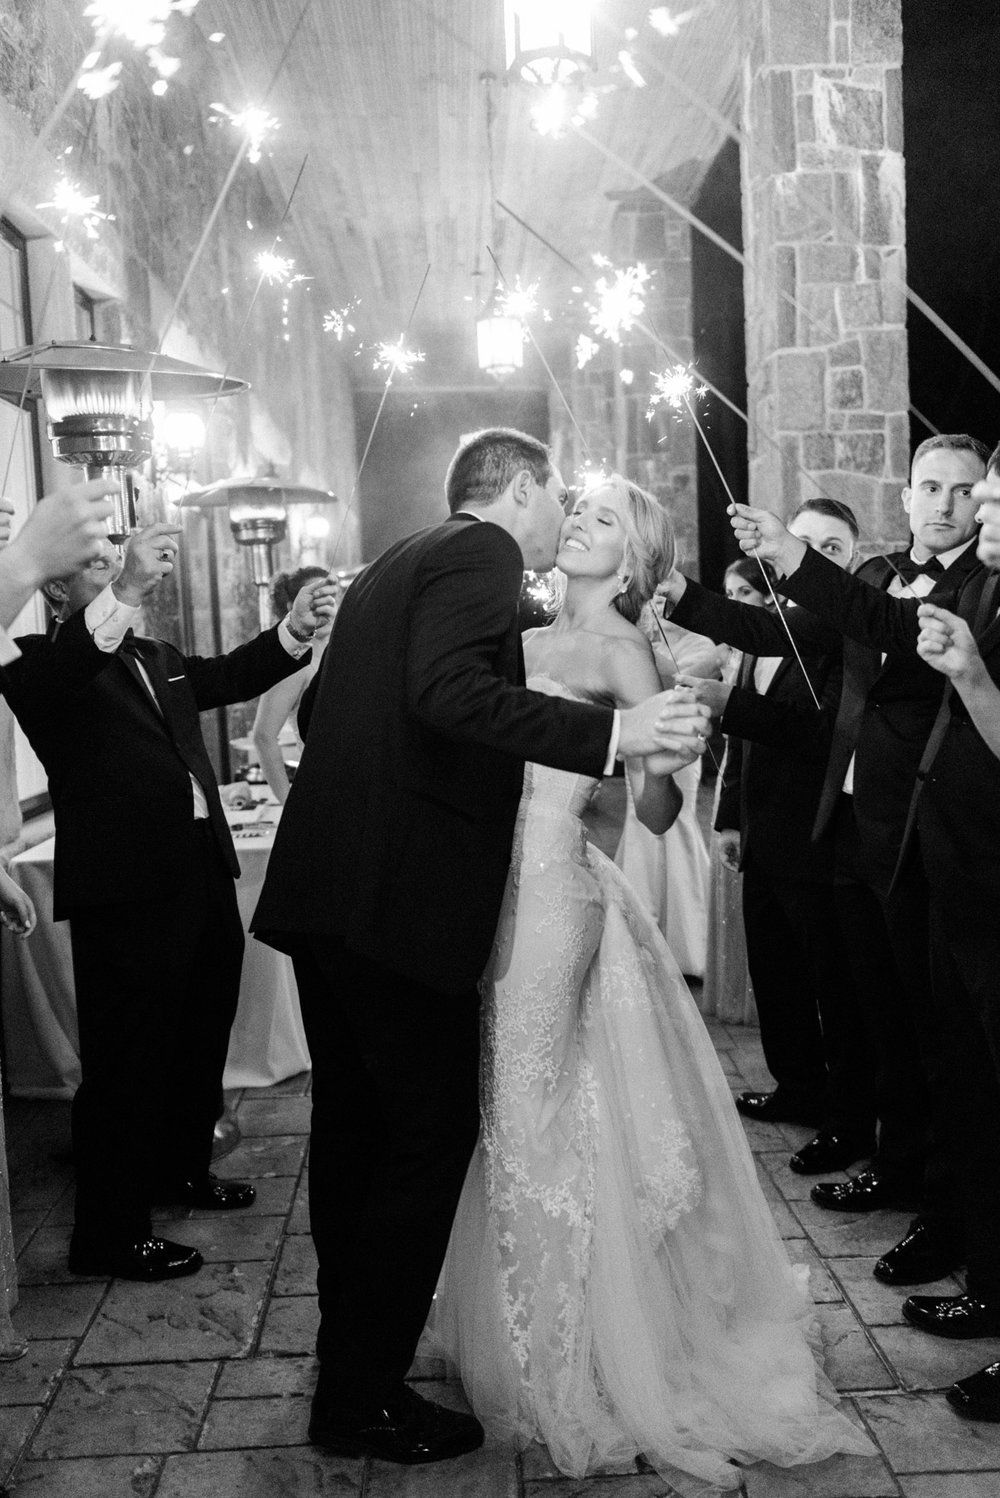 Sparklers at The Inn at Erlowest wedding reception in Lake George, NY